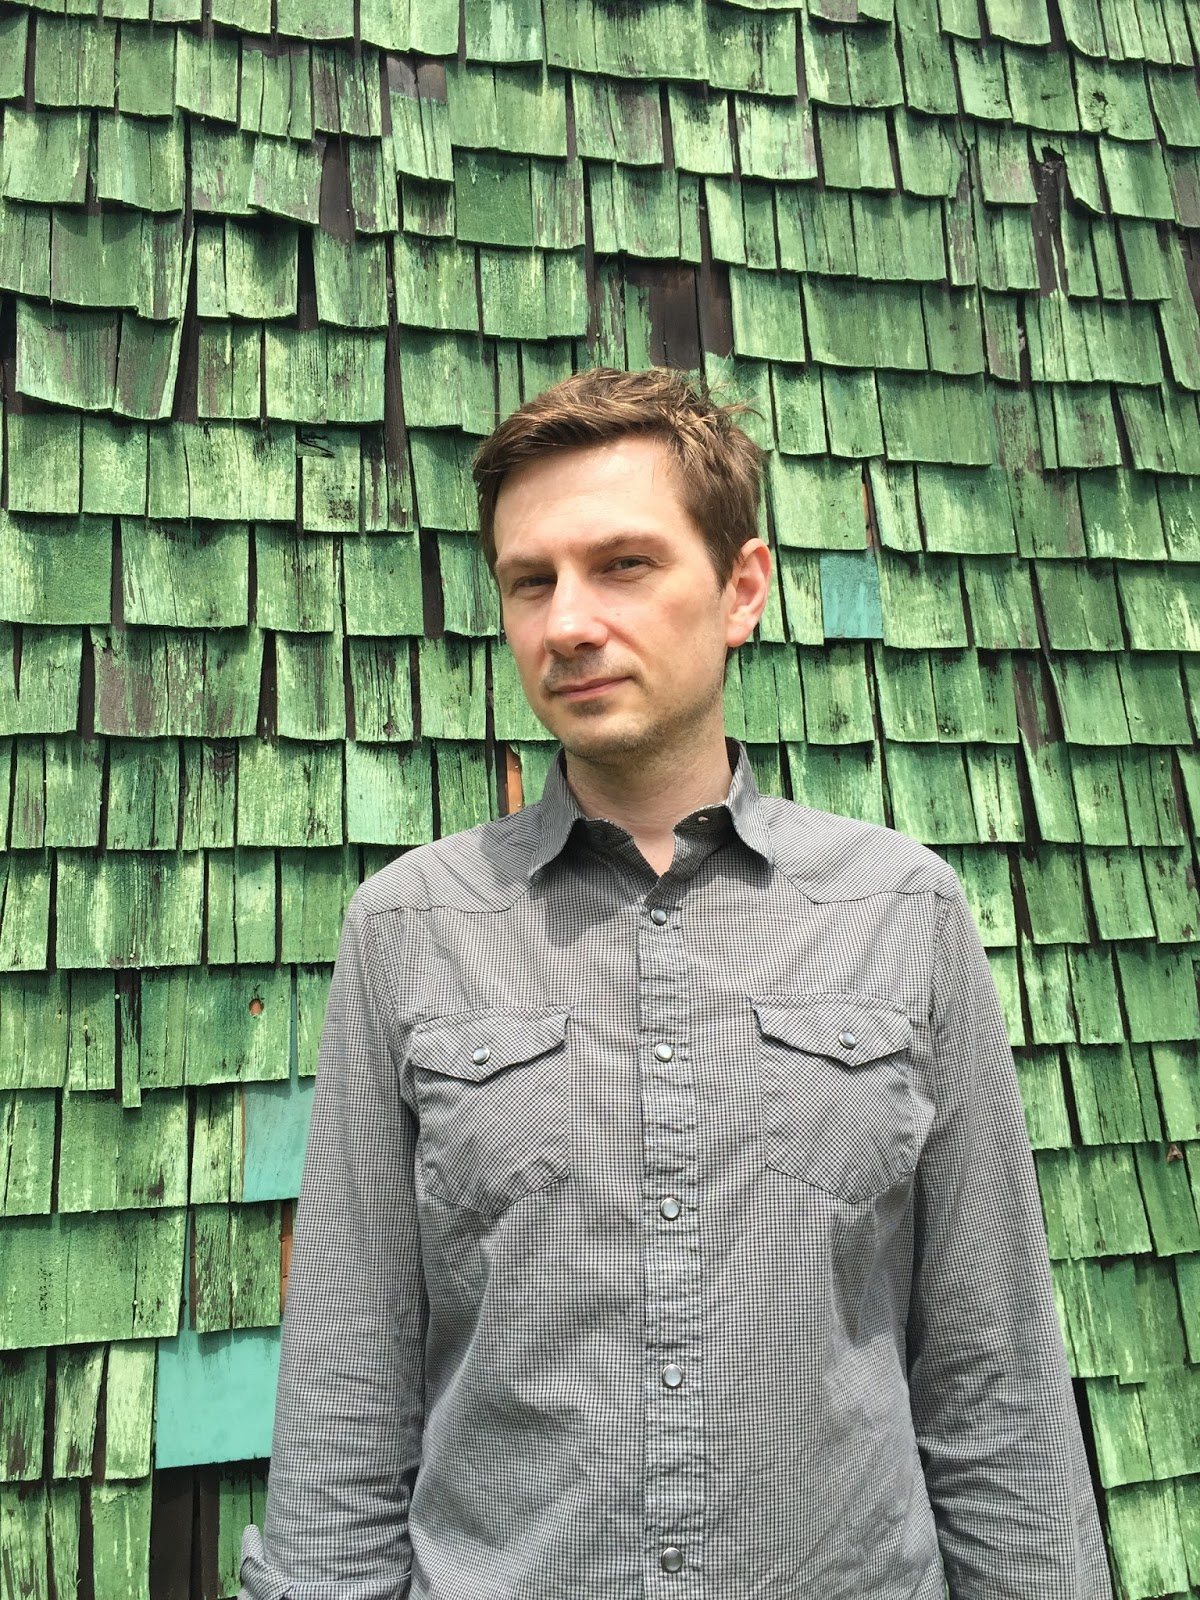 Greg Rhynos Debut Novel To Me You Seem Giant Was Published By NeWest Press In September 2017 His Writing Has Appeared PRISM International